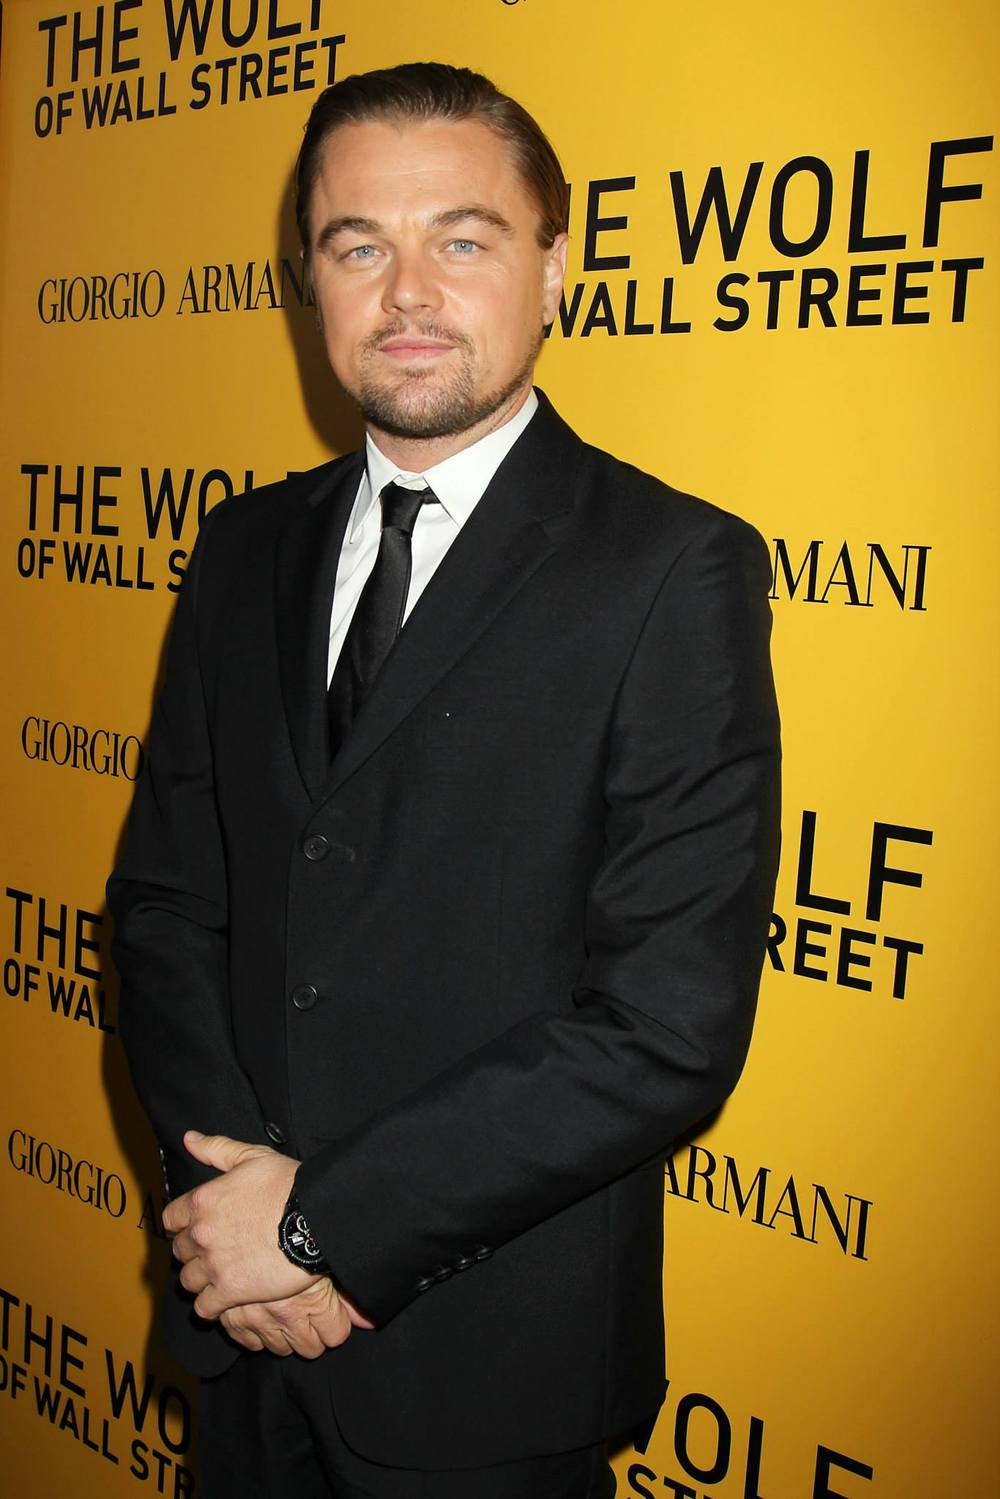 leonardo-dicaprio-at-the-new-york-city-premiere-of-the-wolf-of-wall-street-red-granite-pictures-red-granite-international.jpg